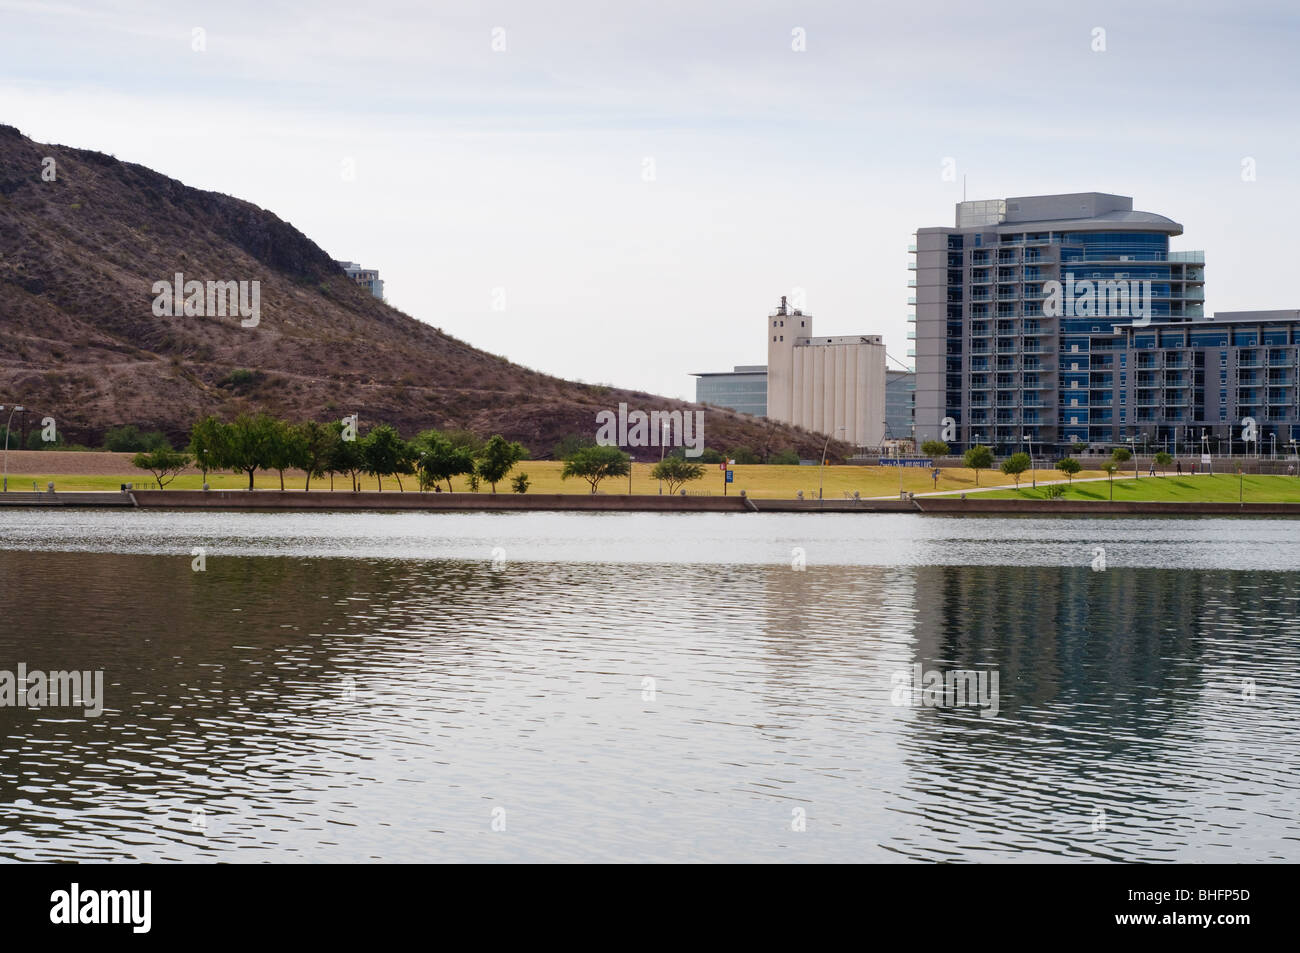 The old Hayden Flour Mill, new office buildings, mountain and paths on Tempe Town Lake, in Tempe, Arizona - Stock Image